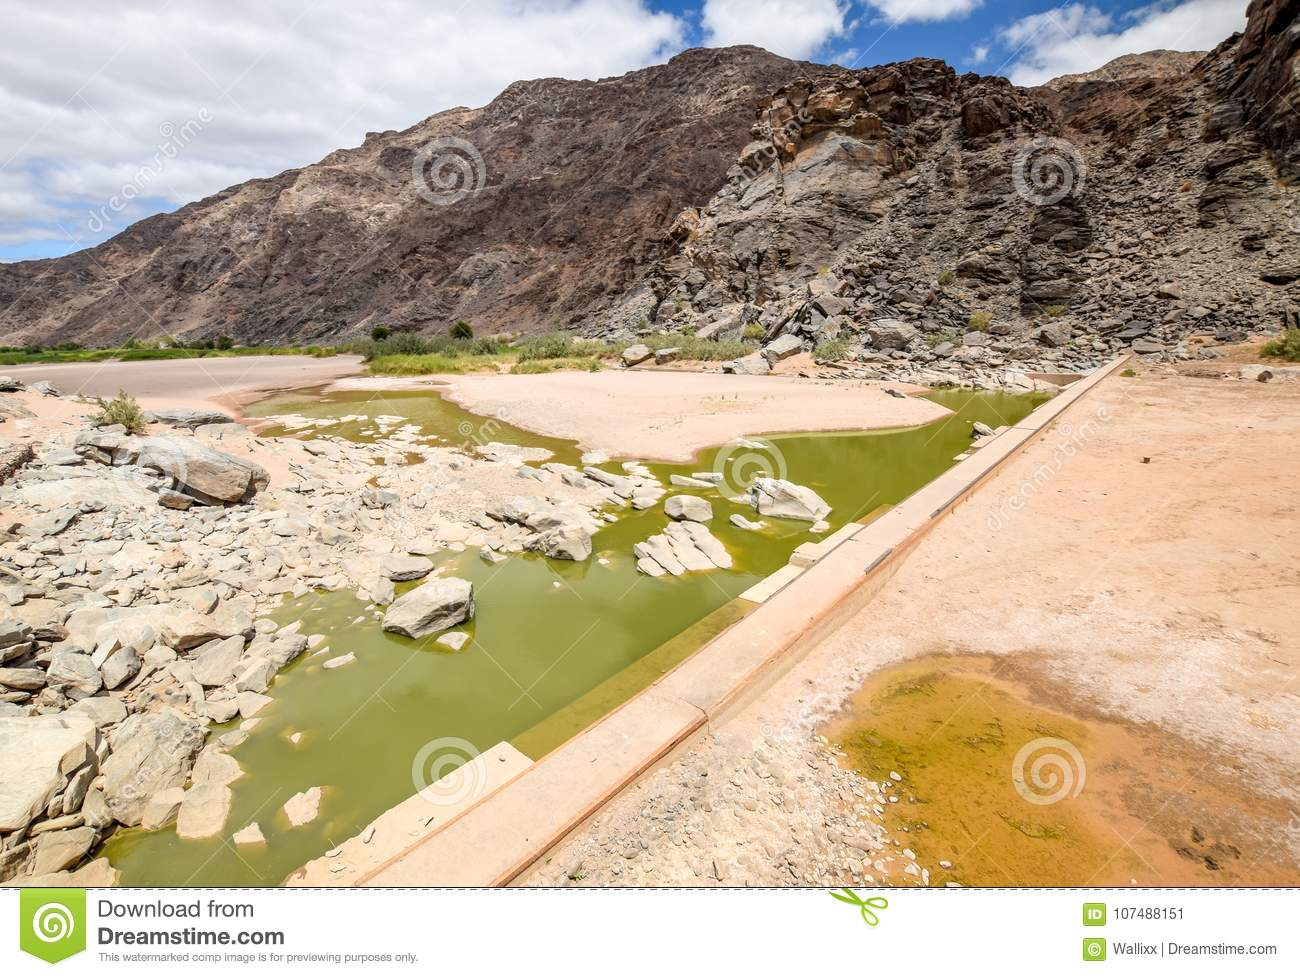 Rests of water and an old dam during dry season near Ai-Ais Hot Springs at Fish River Canyon, Namibia